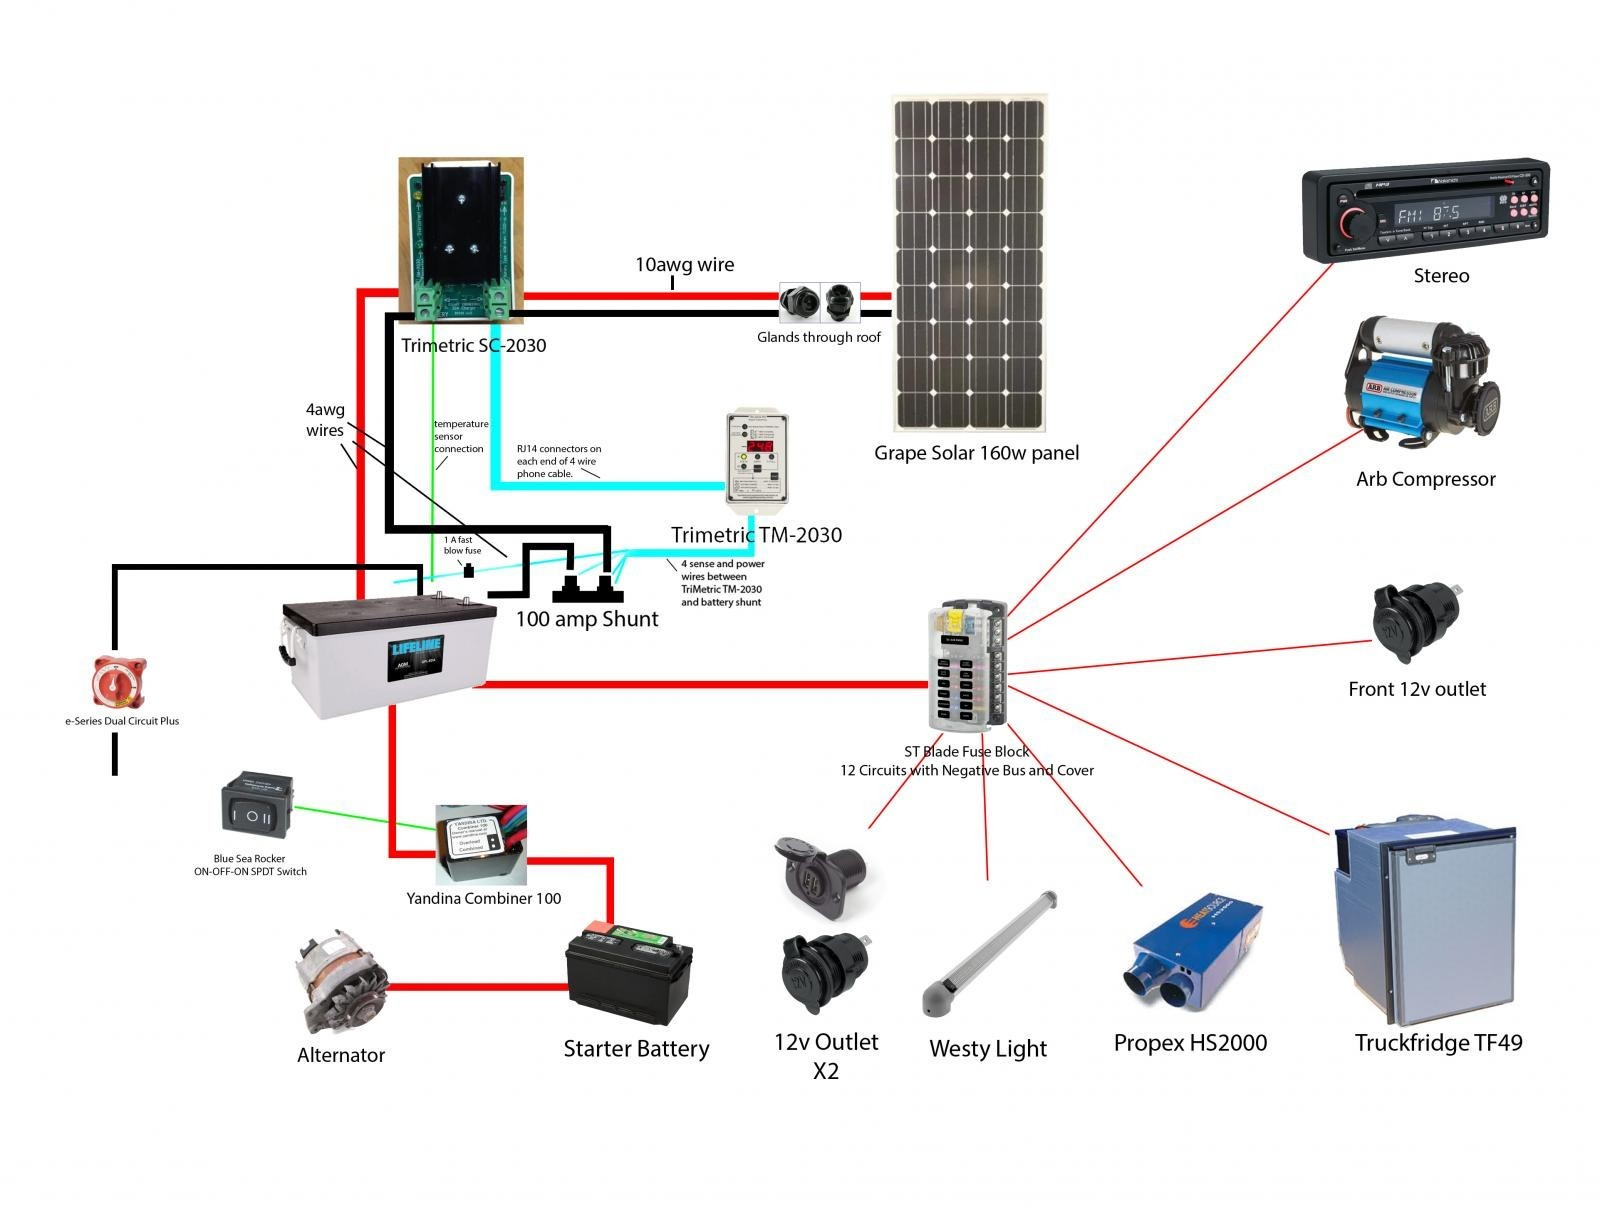 Wiring Diagram For A Camper - exclusive wiring diagram design on